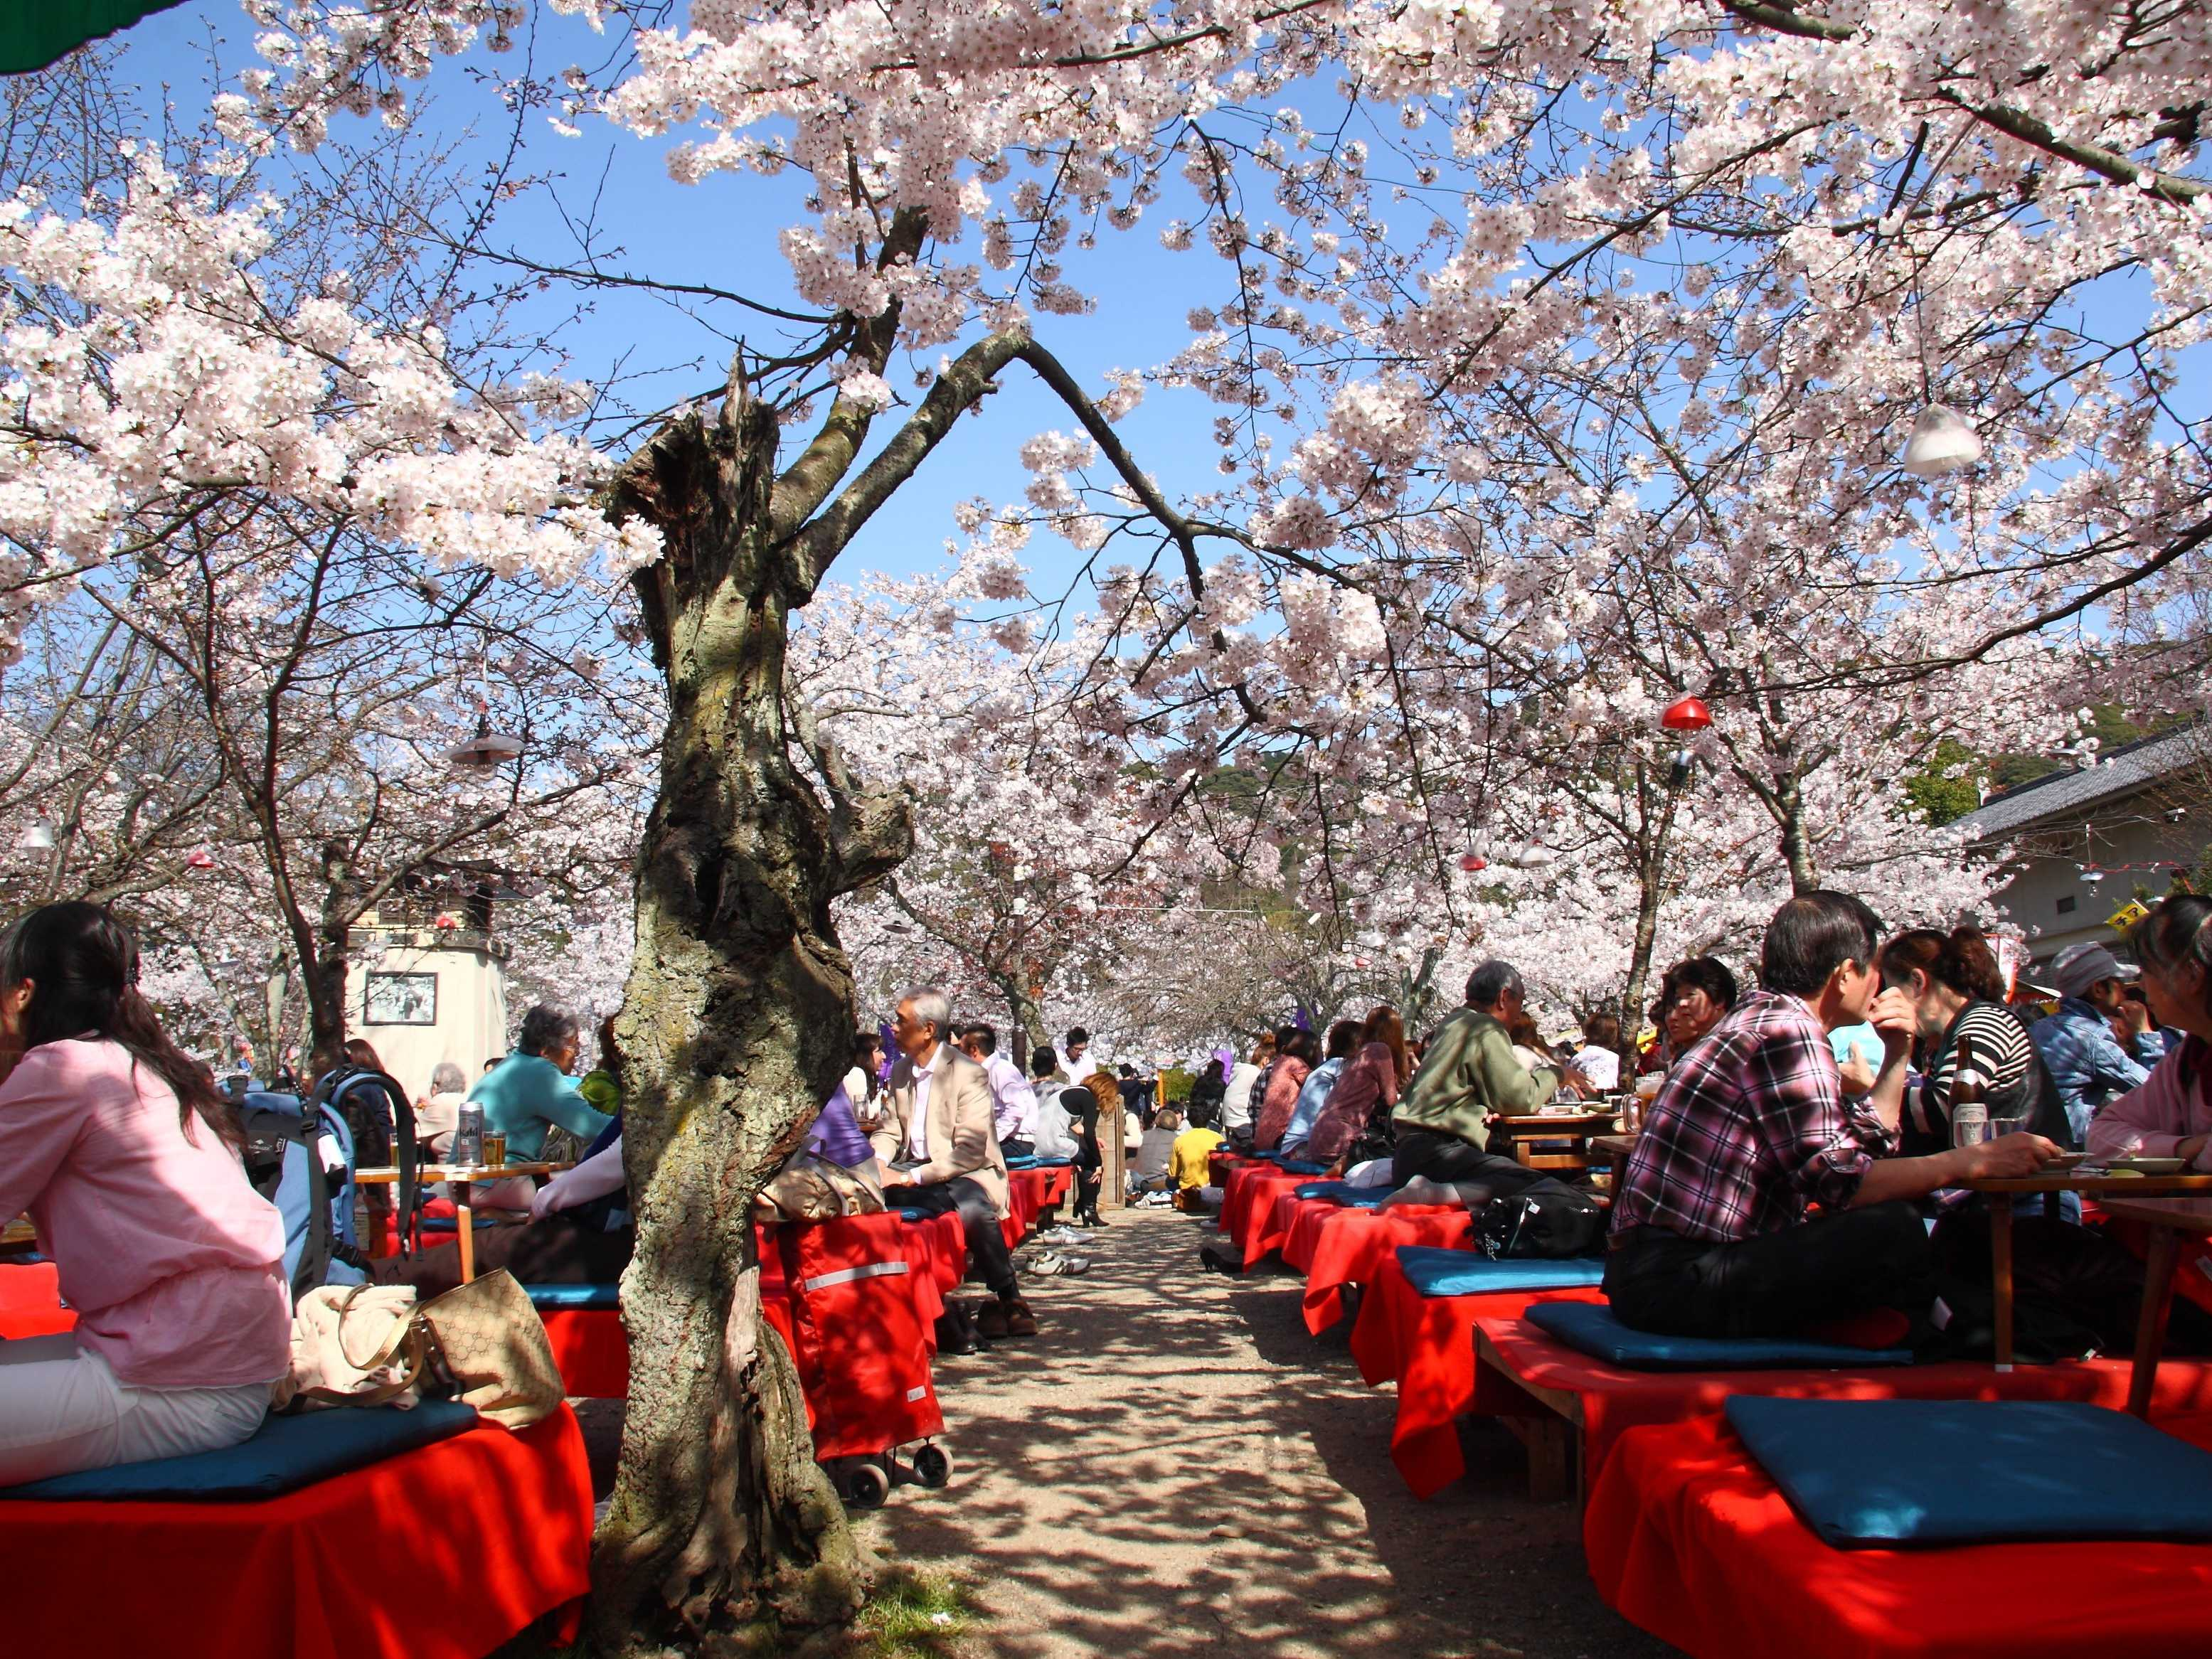 Walk under the budding cherry blossoms in Kyoto, Japan.